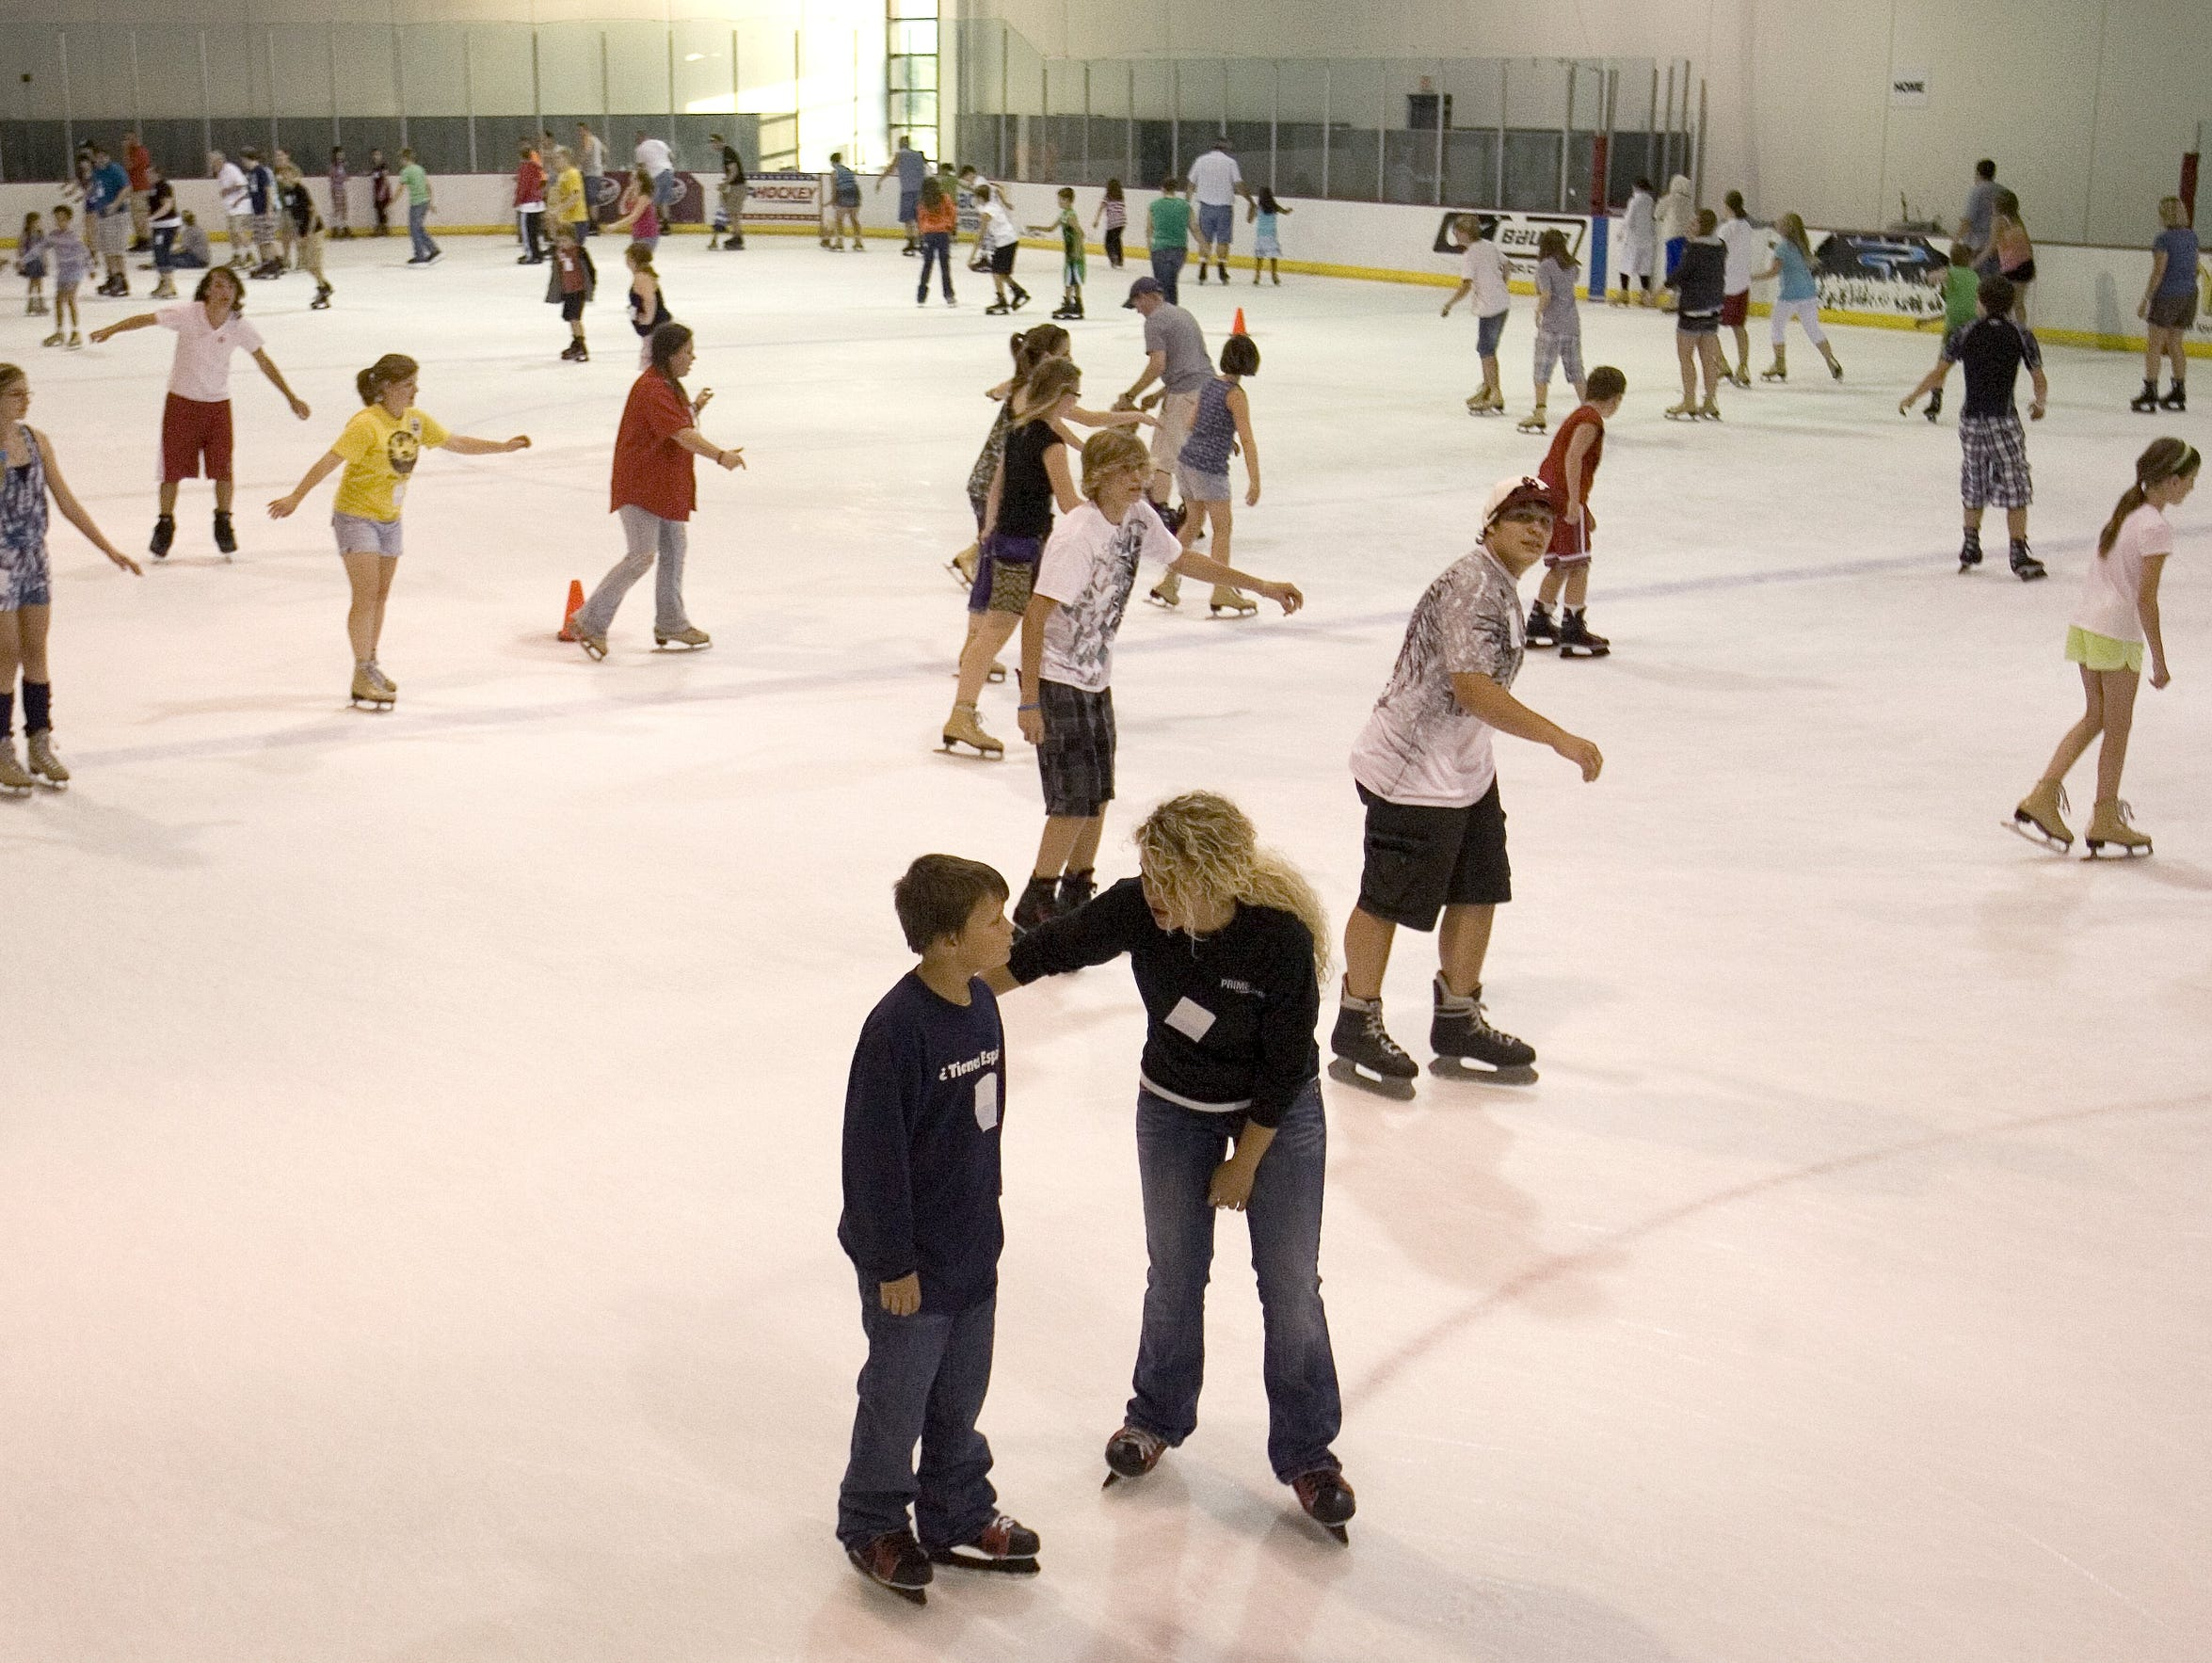 Thanksgiving weekend fun times: Mediacom Ice Park offers